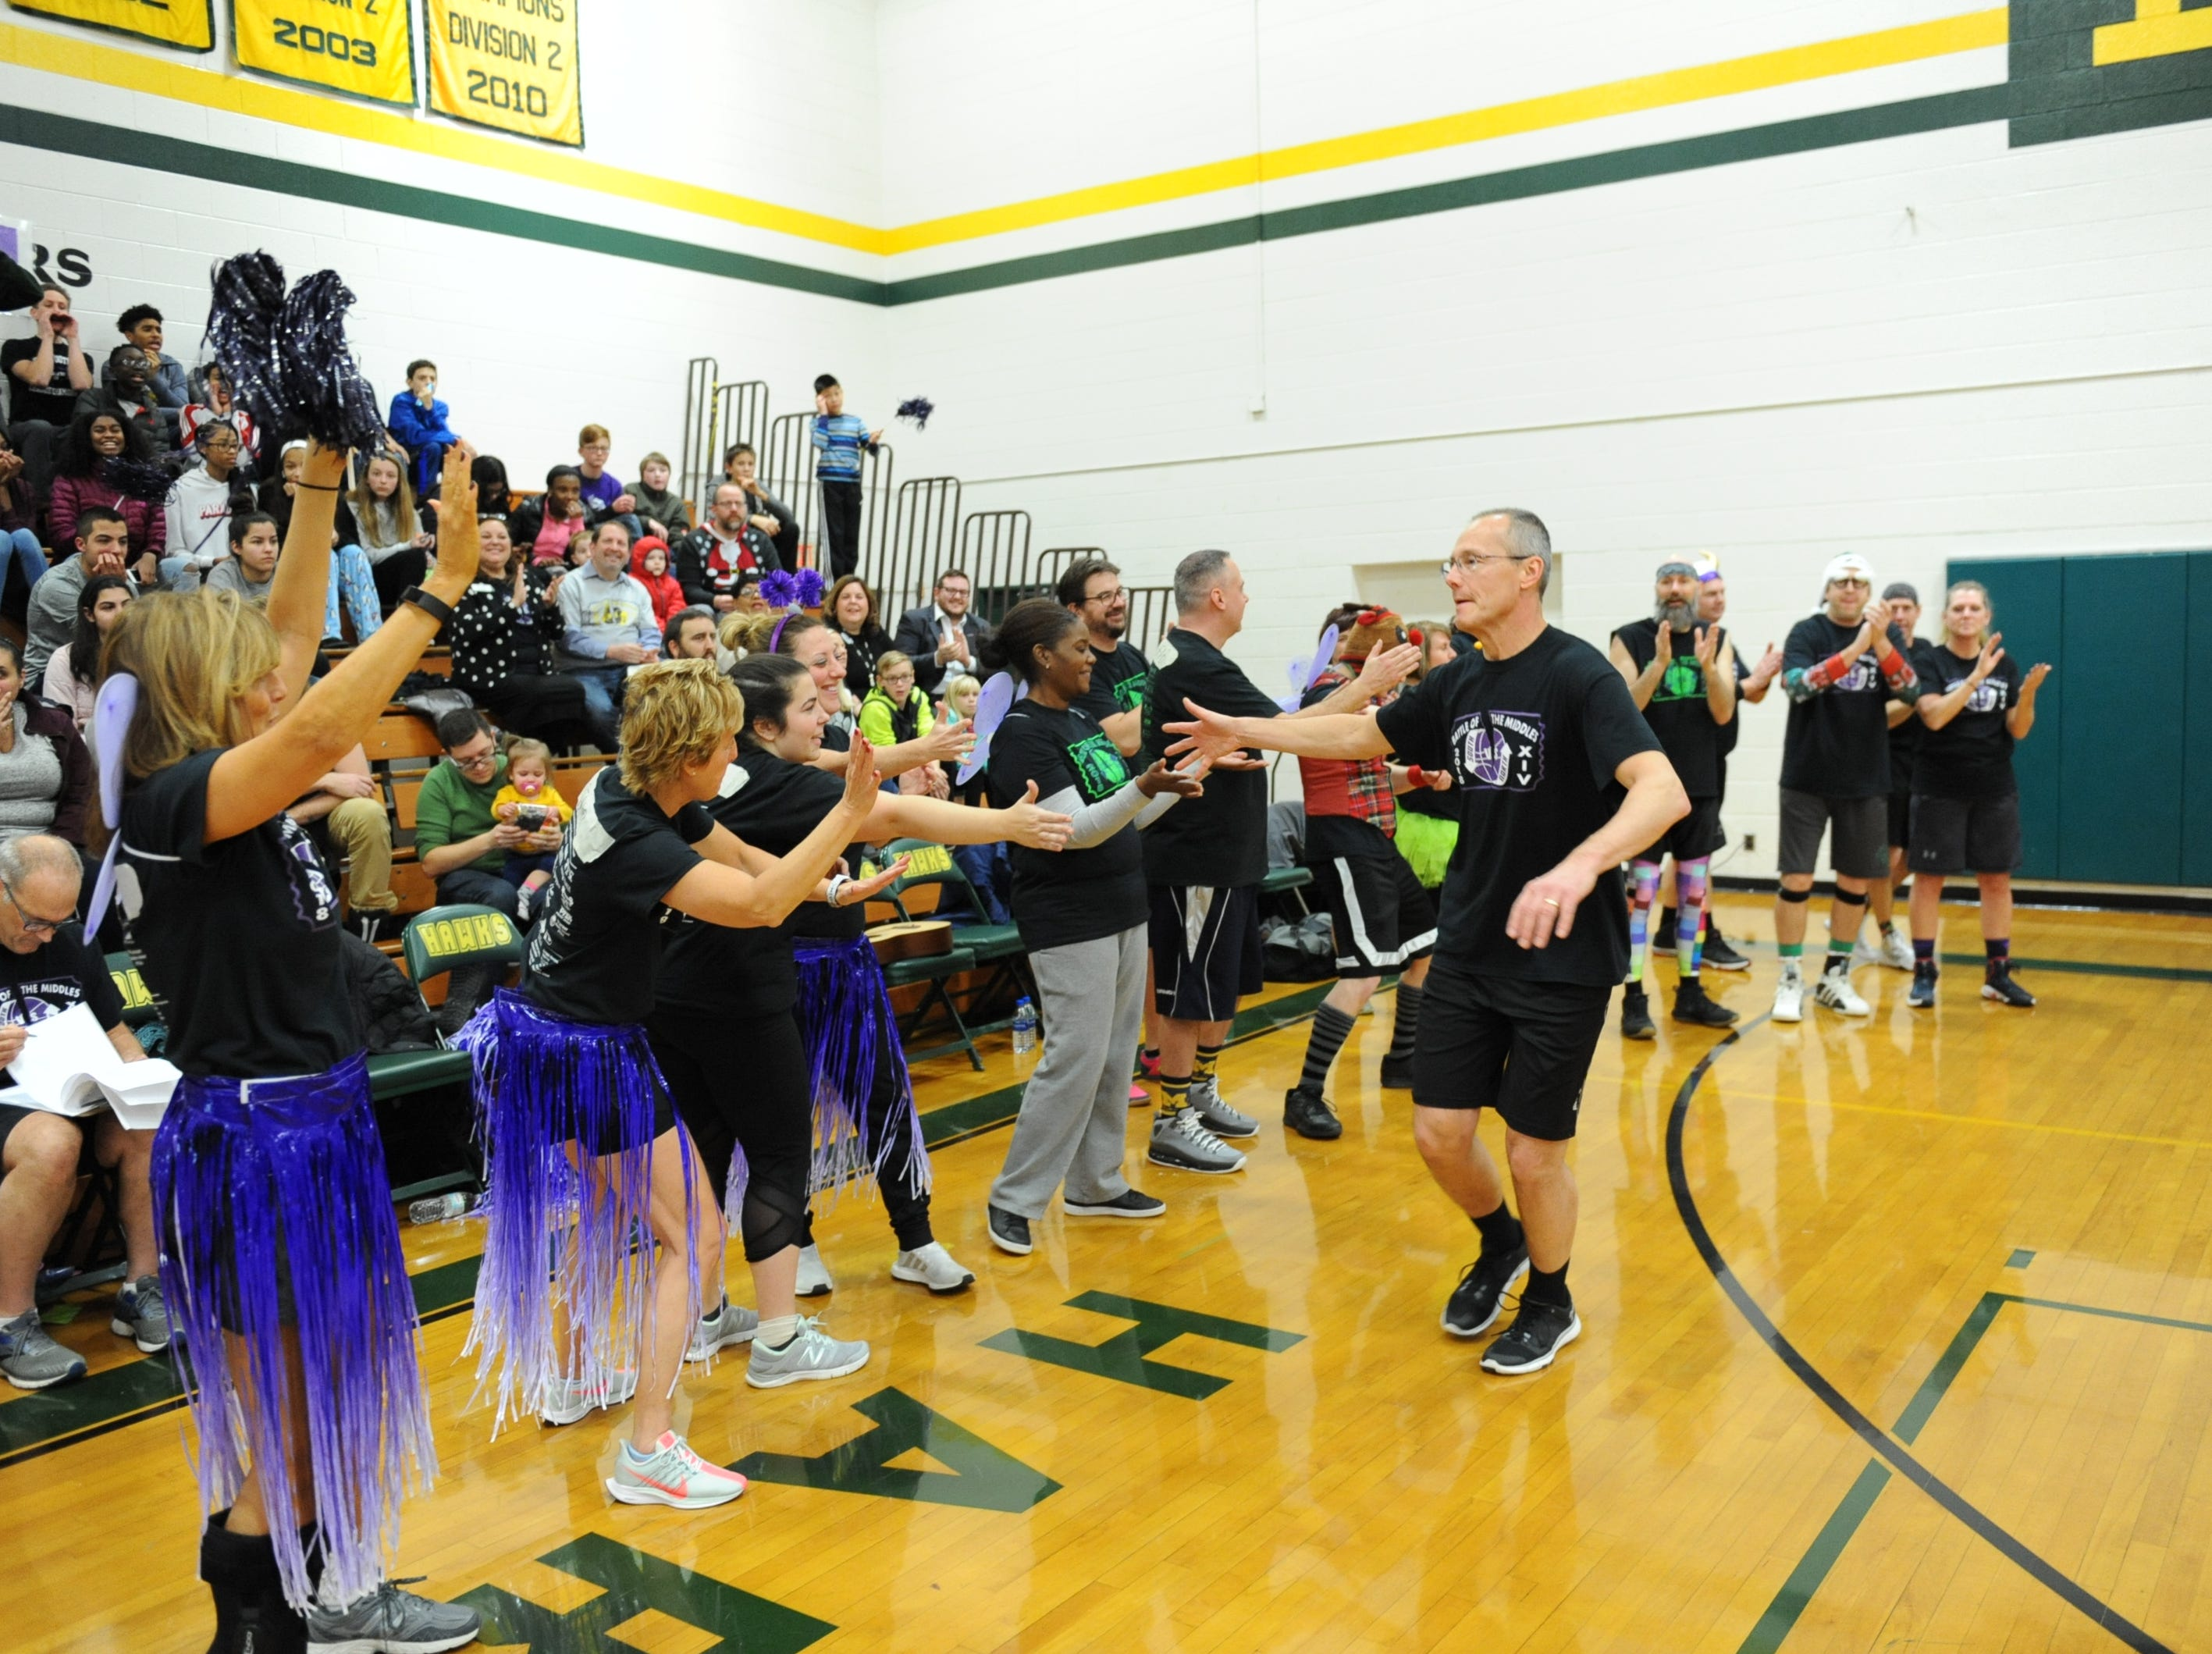 Tom Moss (Warner) has team spirit during the charity basketball game.